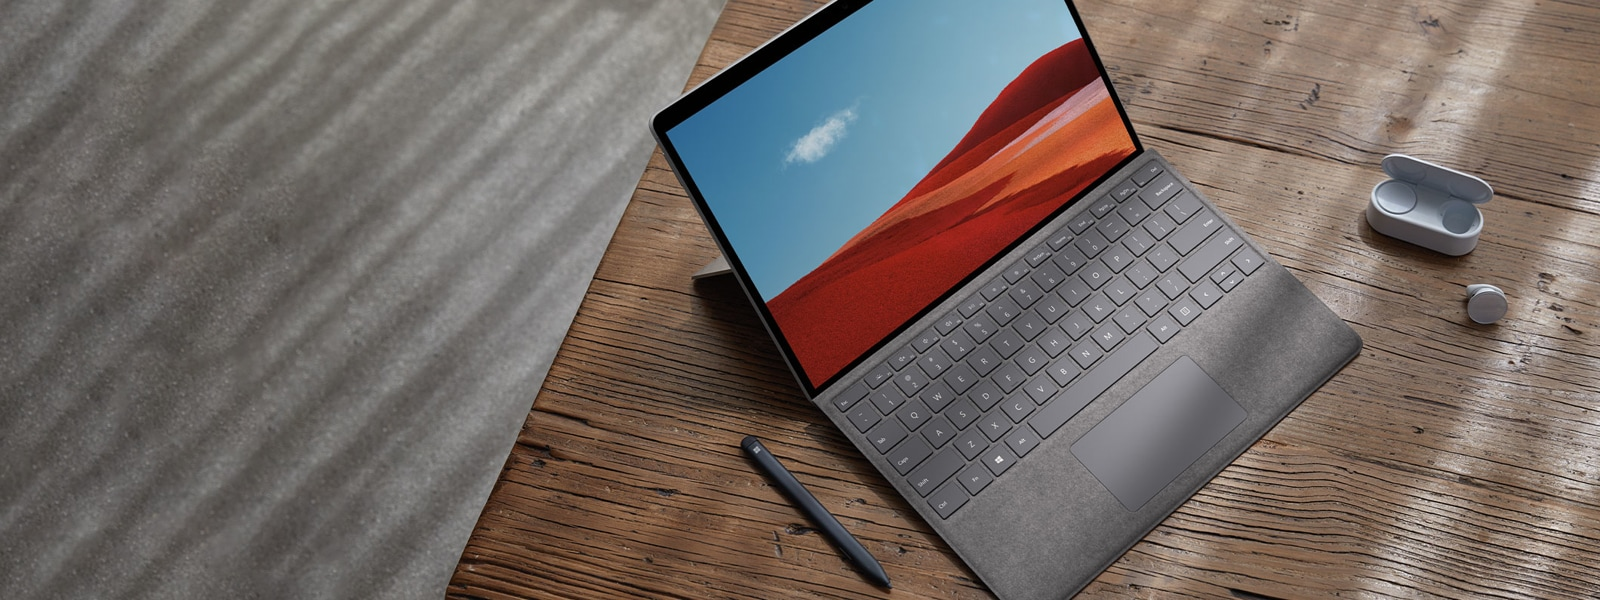 Surface Pro X inside alone on desk with Surface Earbuds and Surface Slim pen